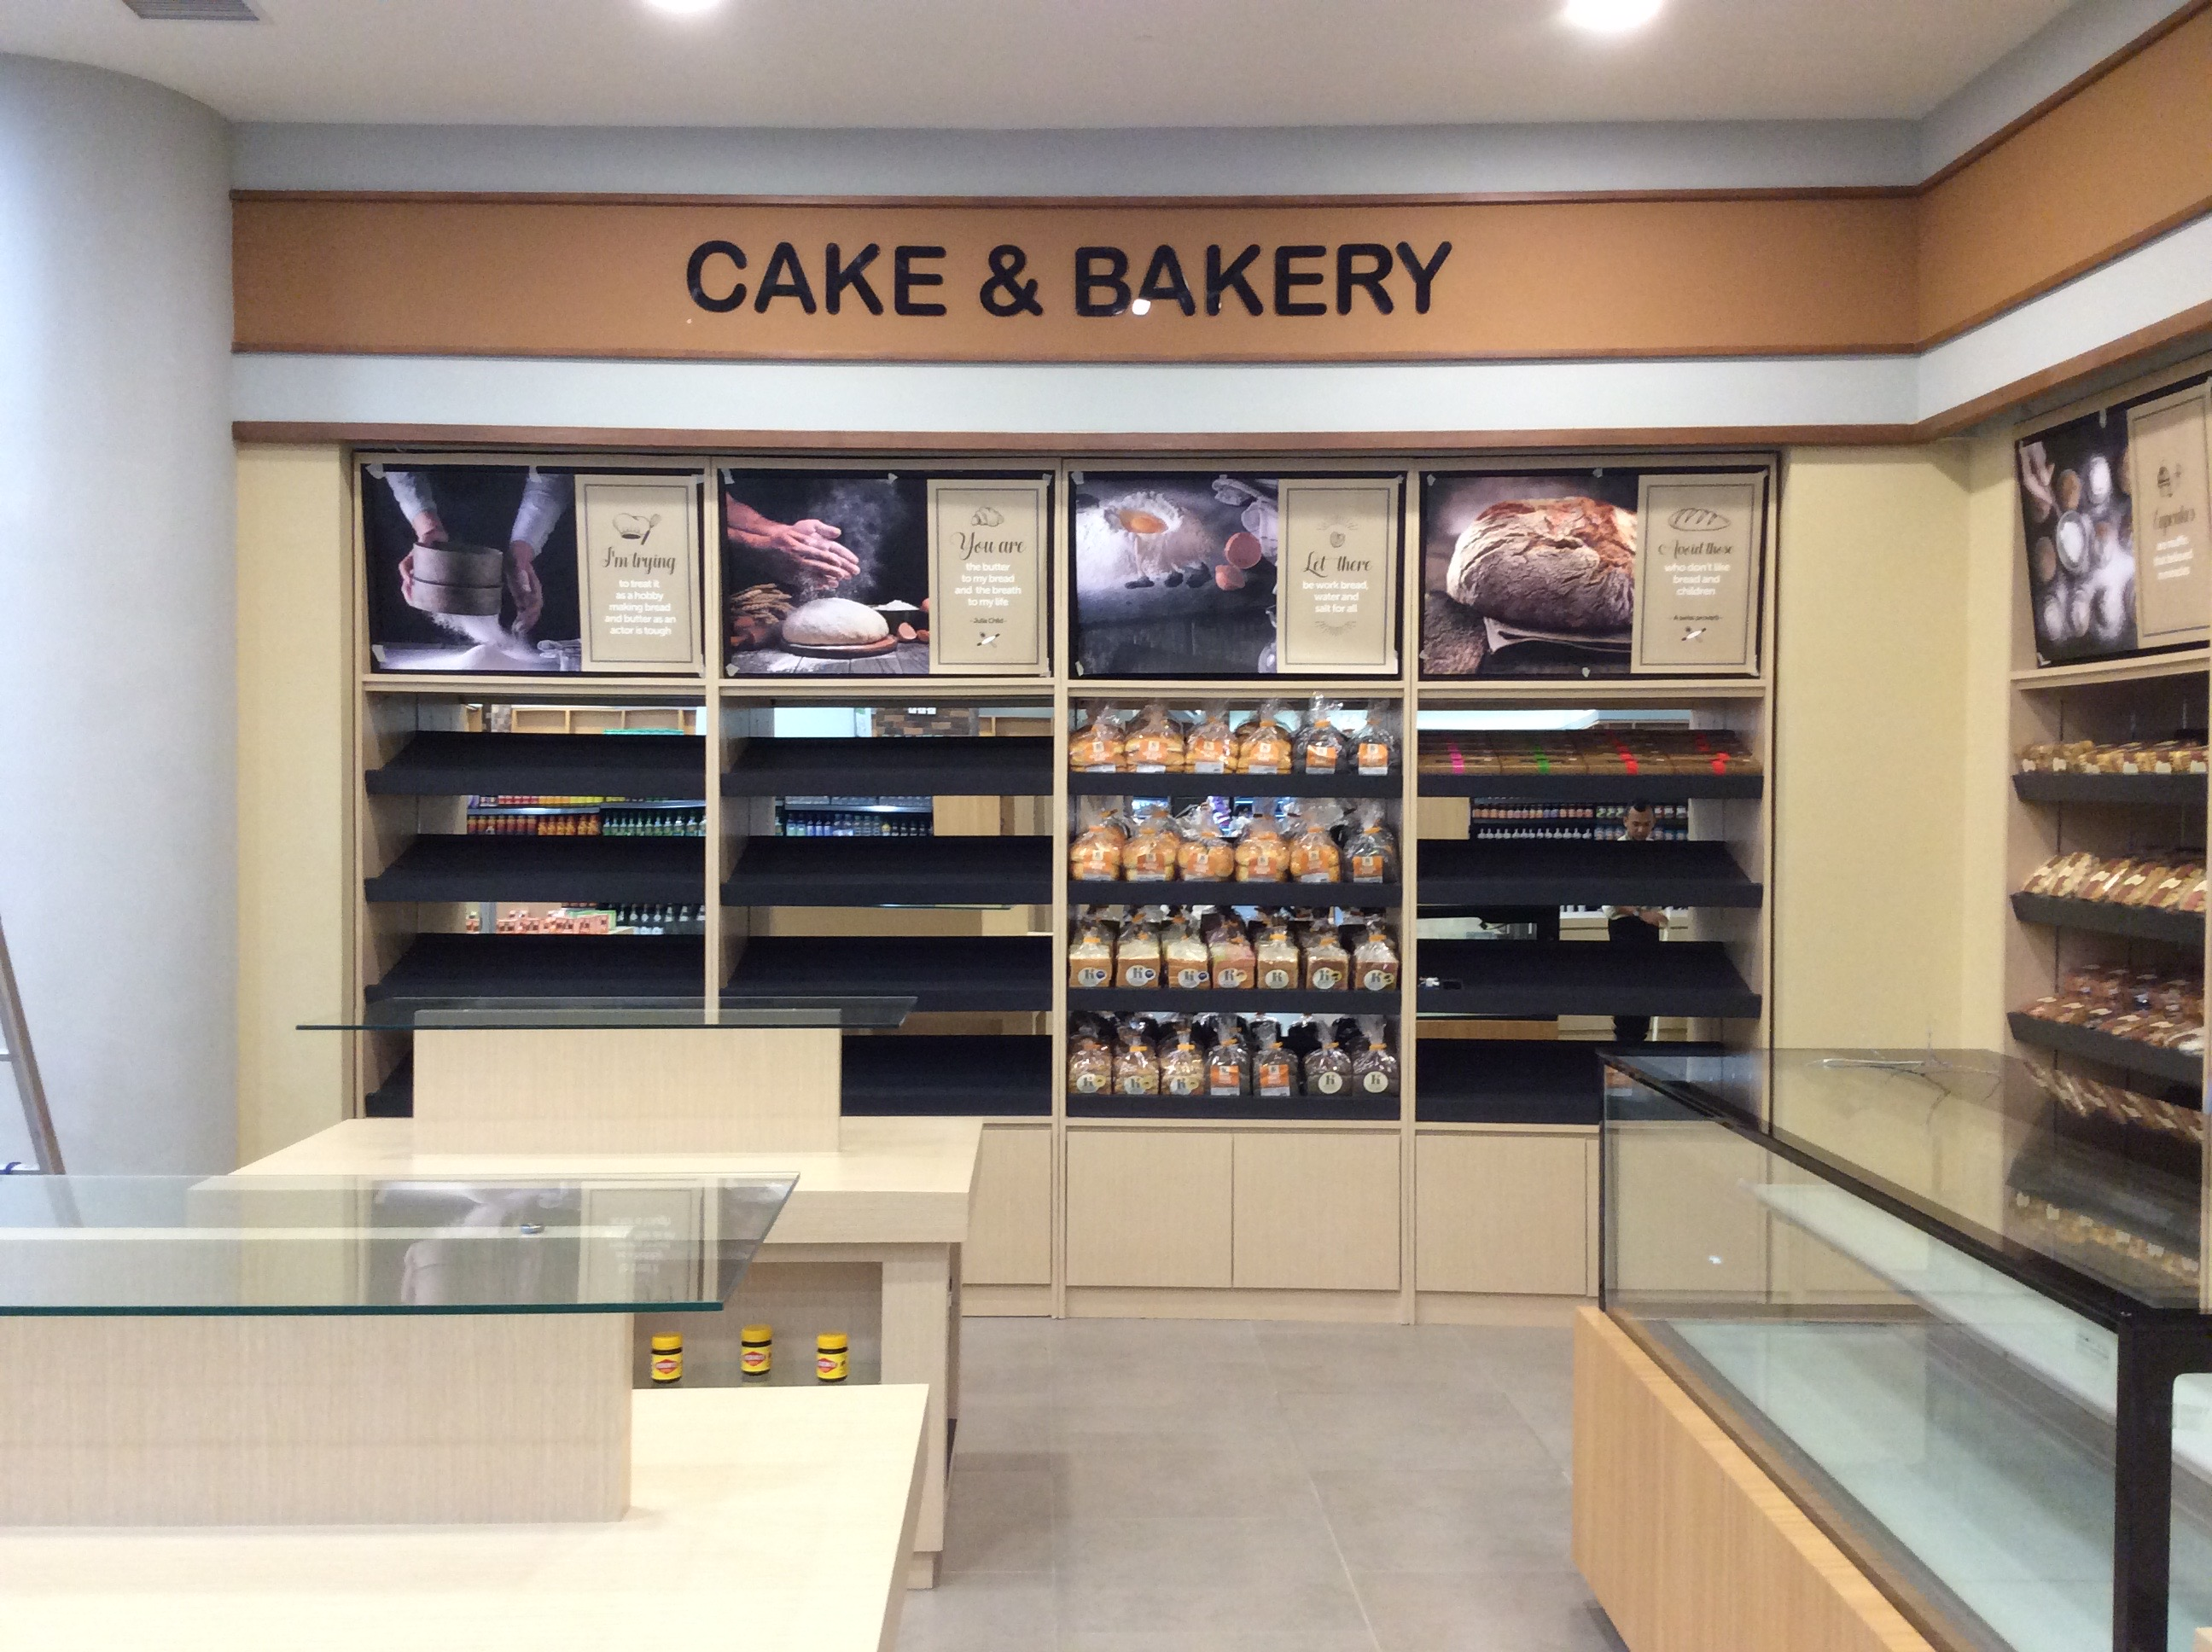 Cake & Bakery Area